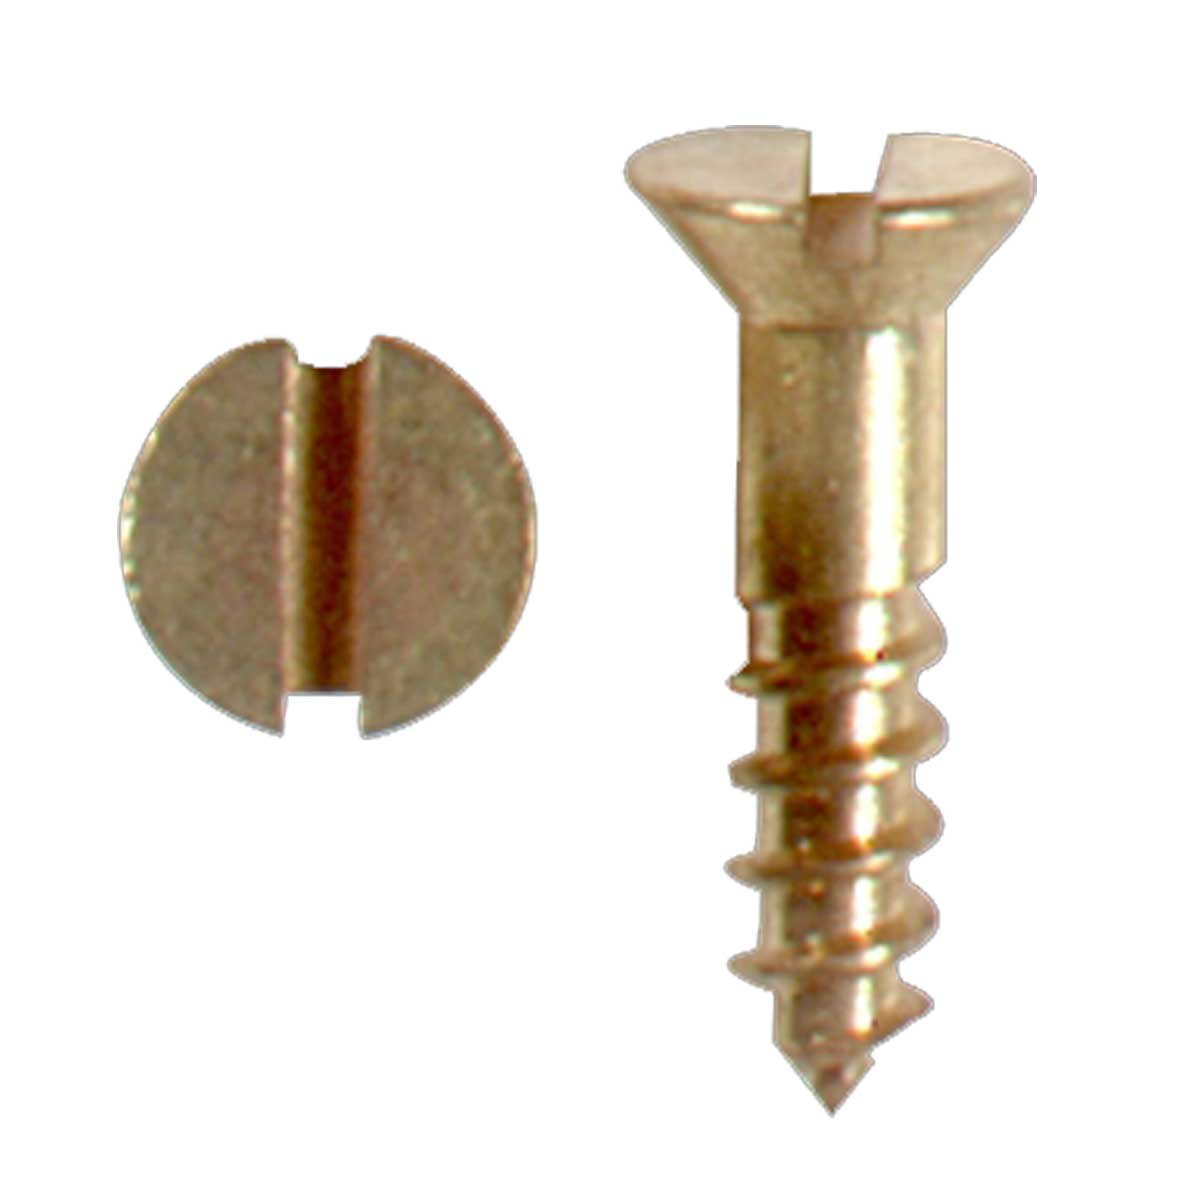 "#4 Brass Flat Head Wood Screws 1/2"" Qty 25 